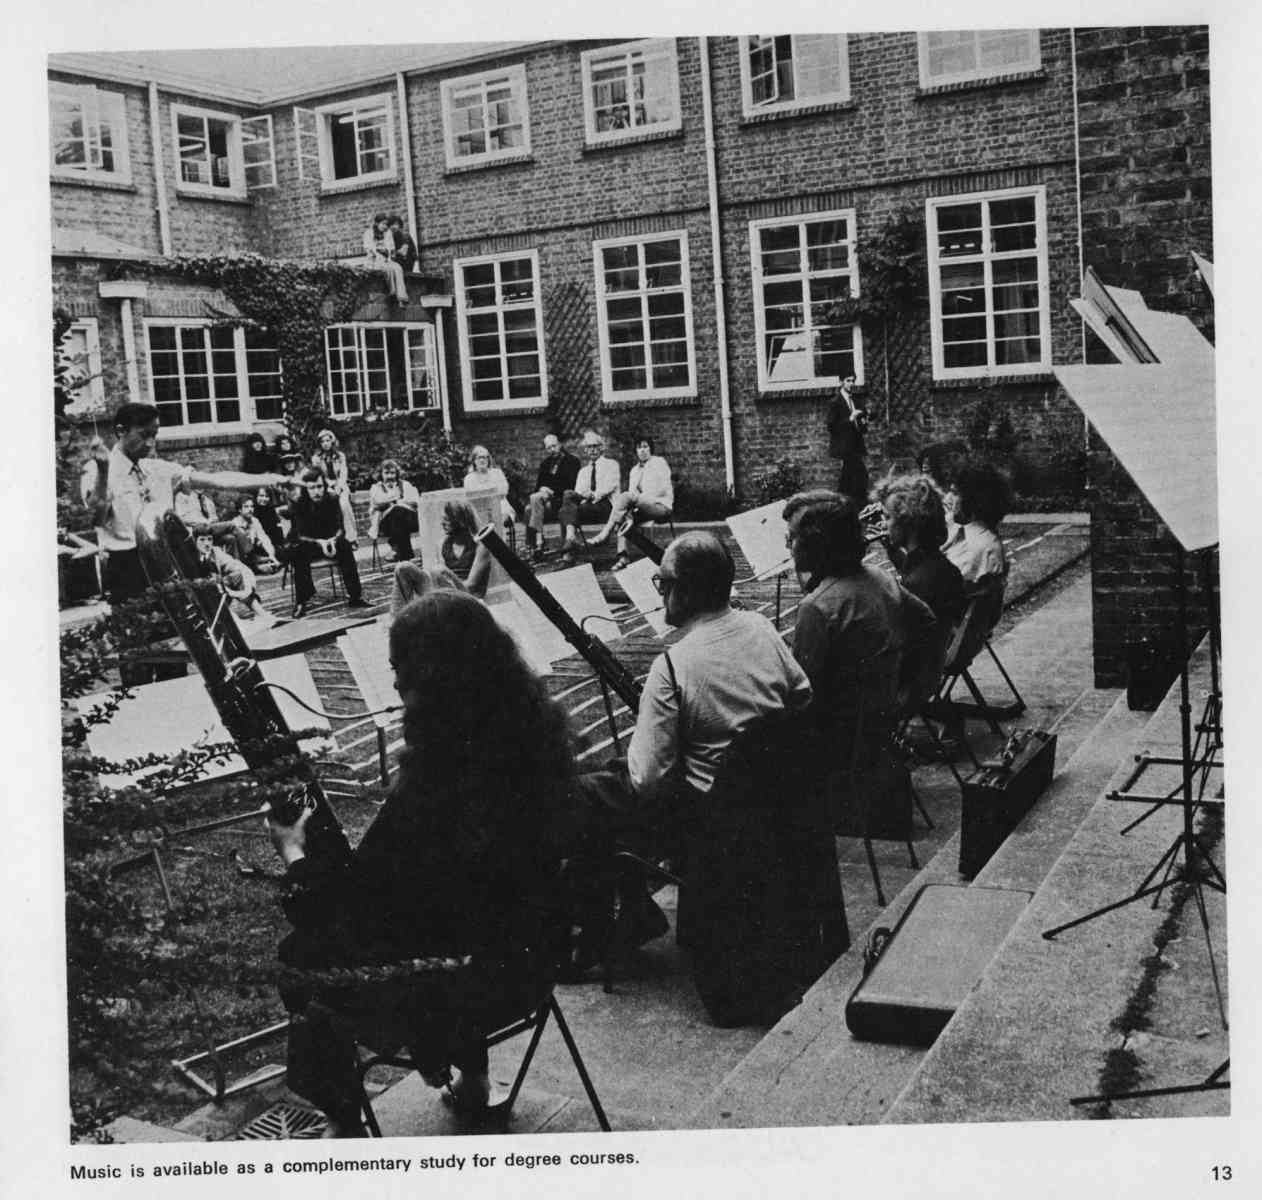 Music in the Quad - 1973, Chris Thomas